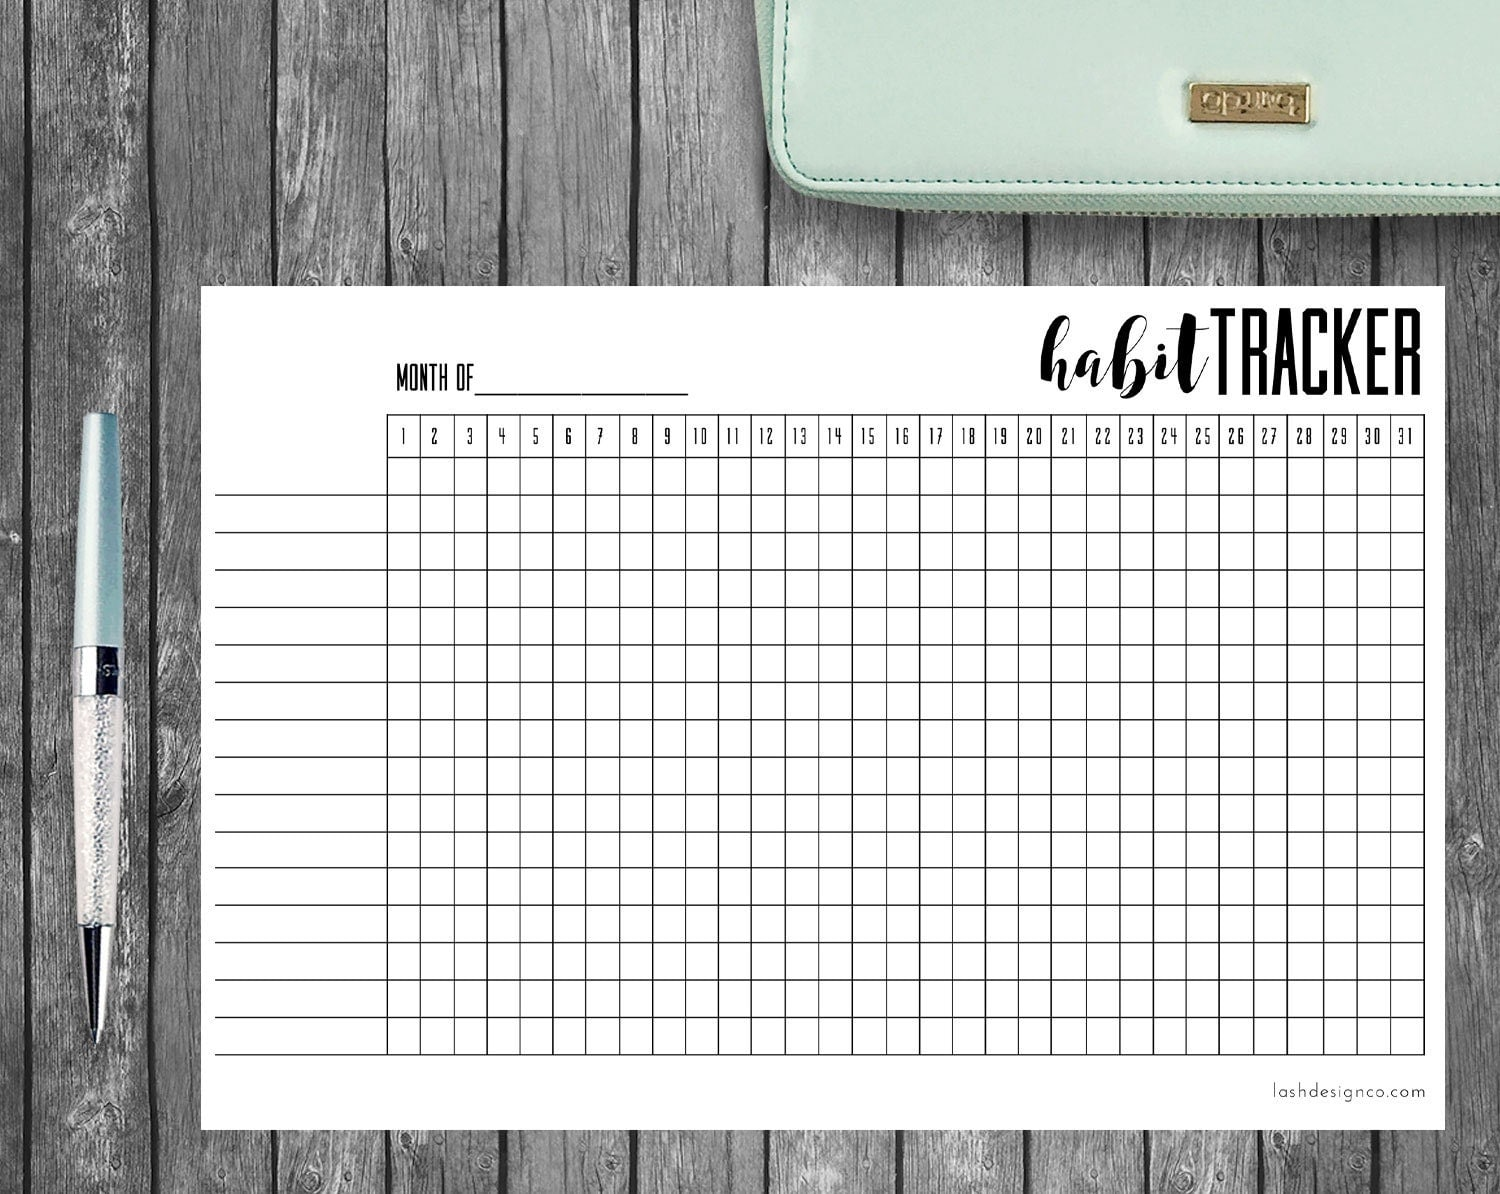 Playful image in bullet journal habit tracker printable